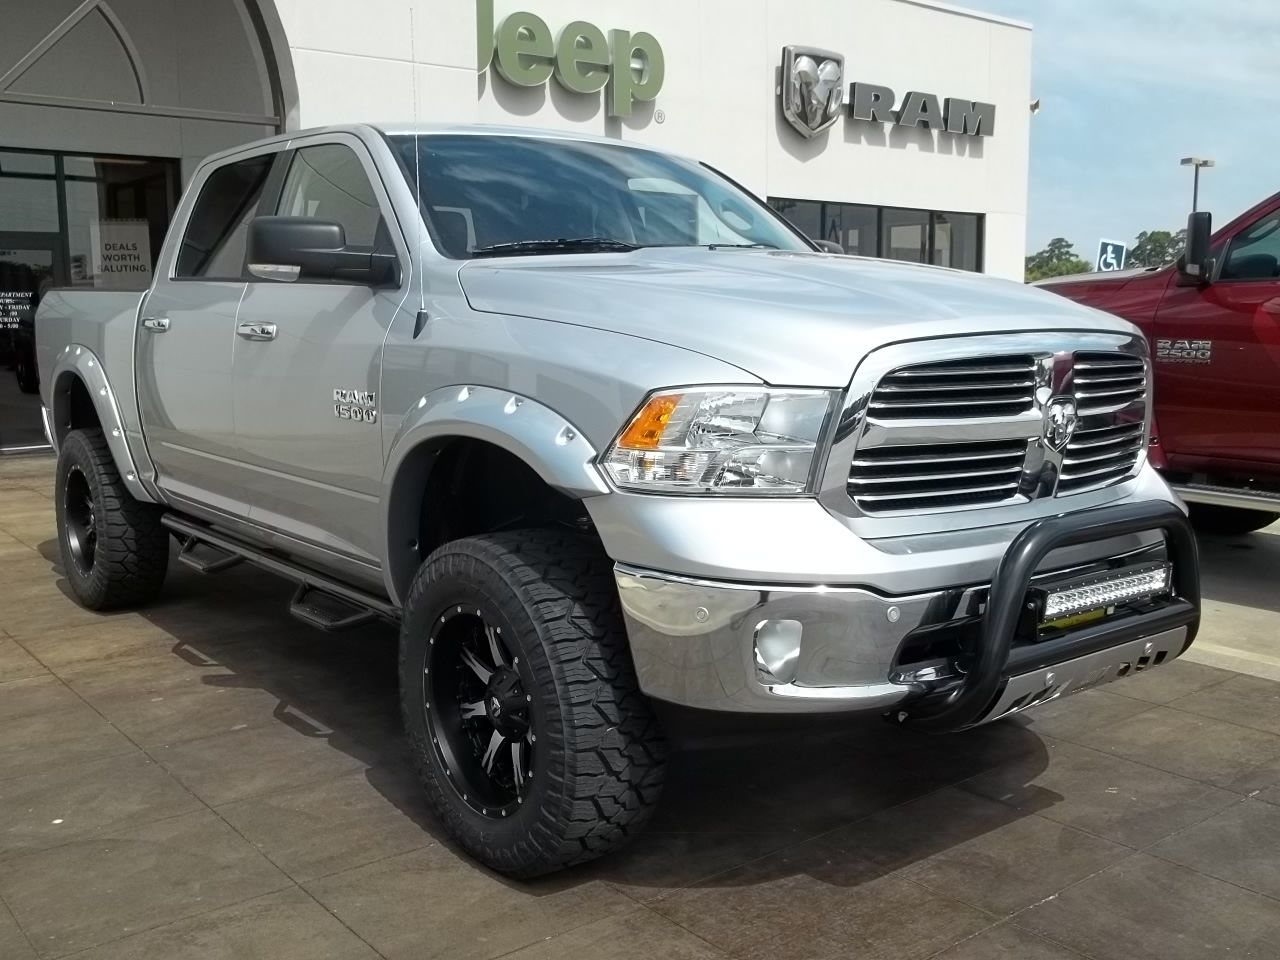 Browse our inventory for a new chrysler dodge jeep or ram and click call or stop by martin chrysler to schedule a test drive today